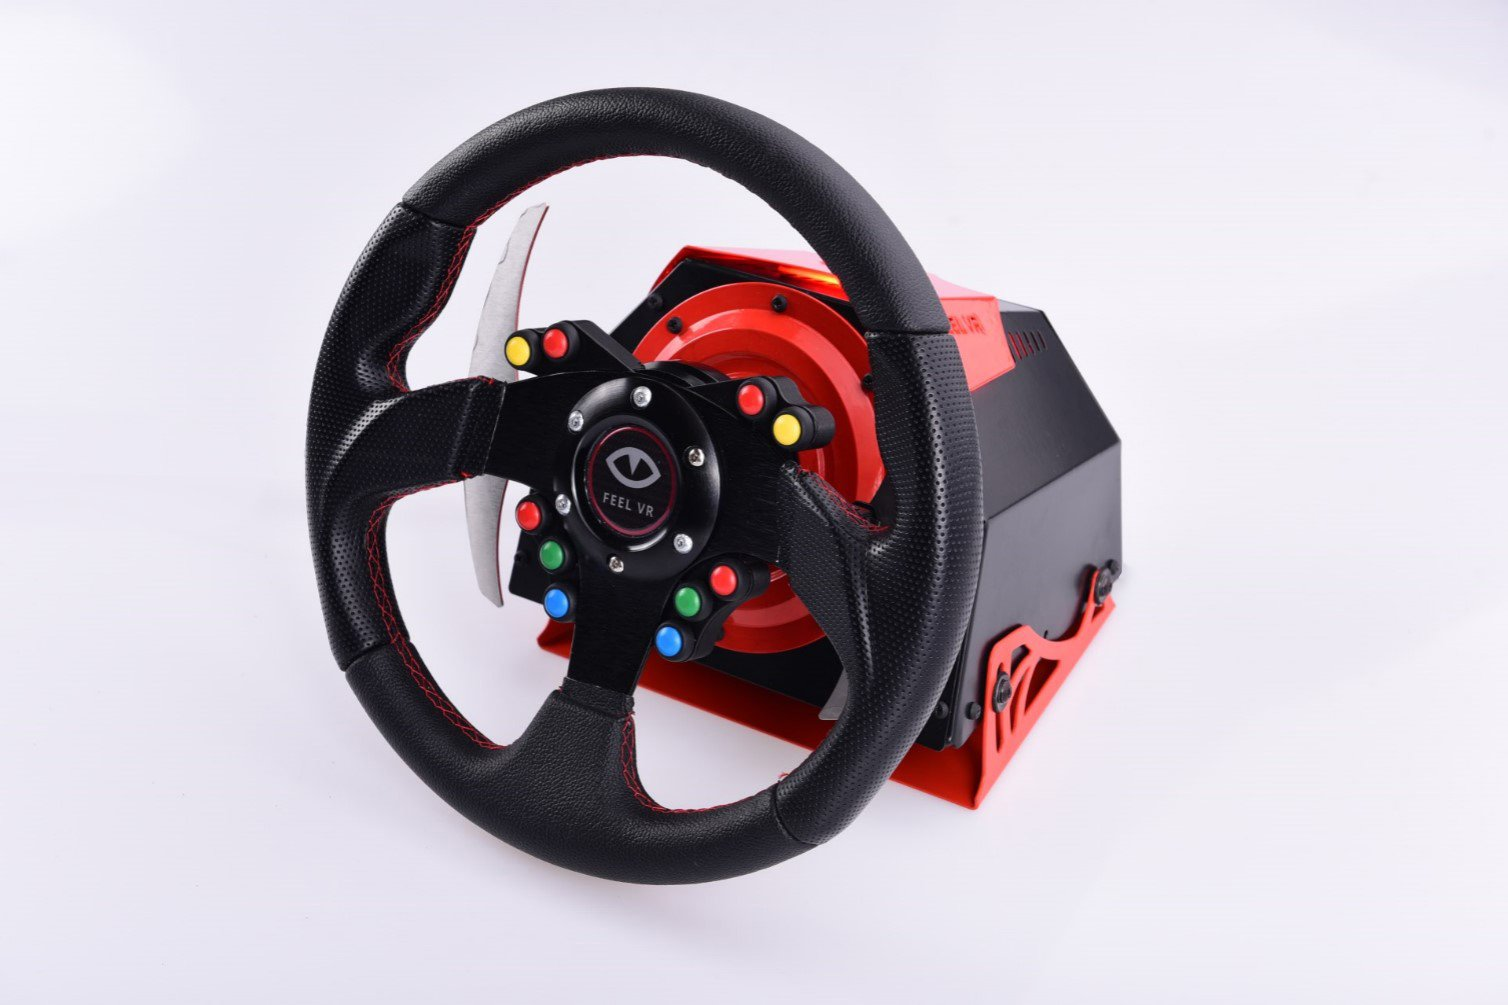 FeelVR GT wheel and base